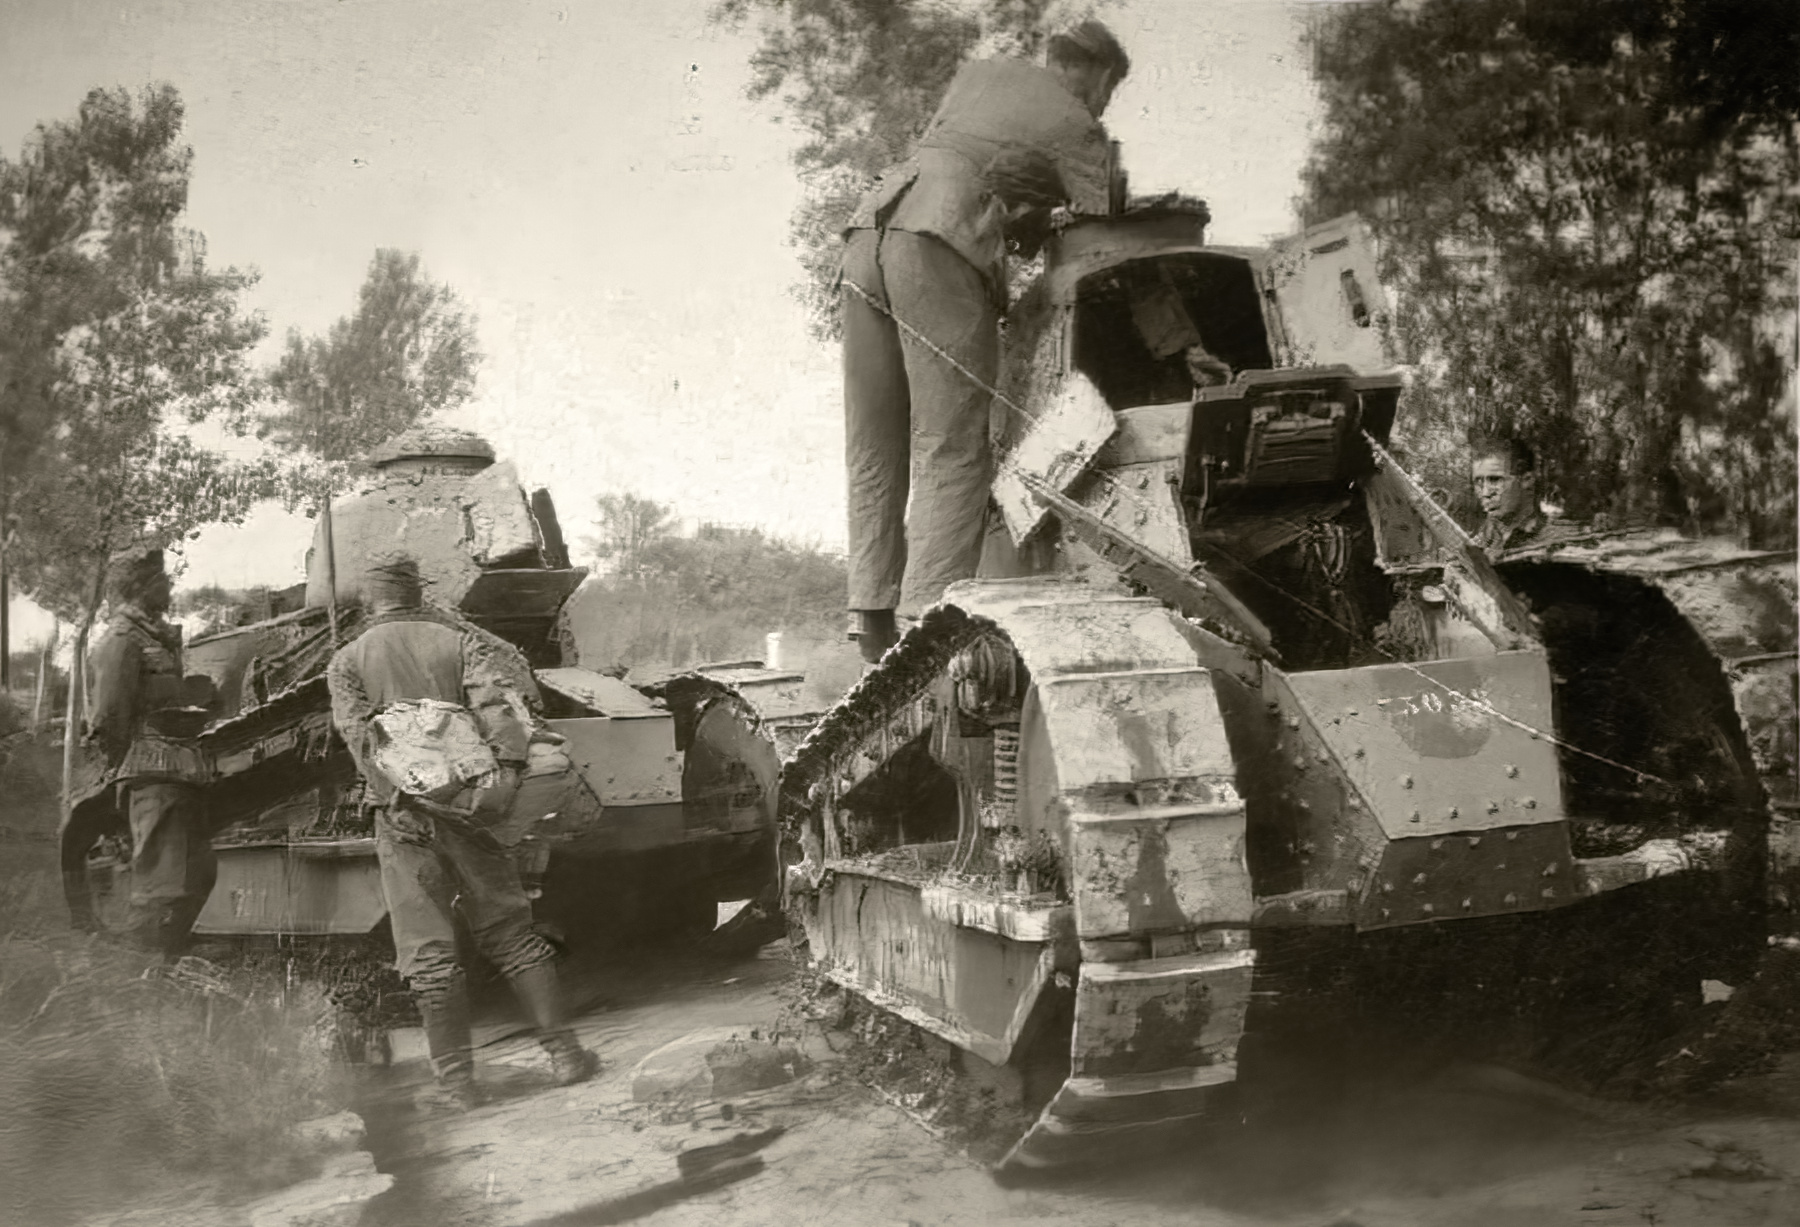 French Army Renault FT 17s captured during the Battle of France 1940 ebay 03